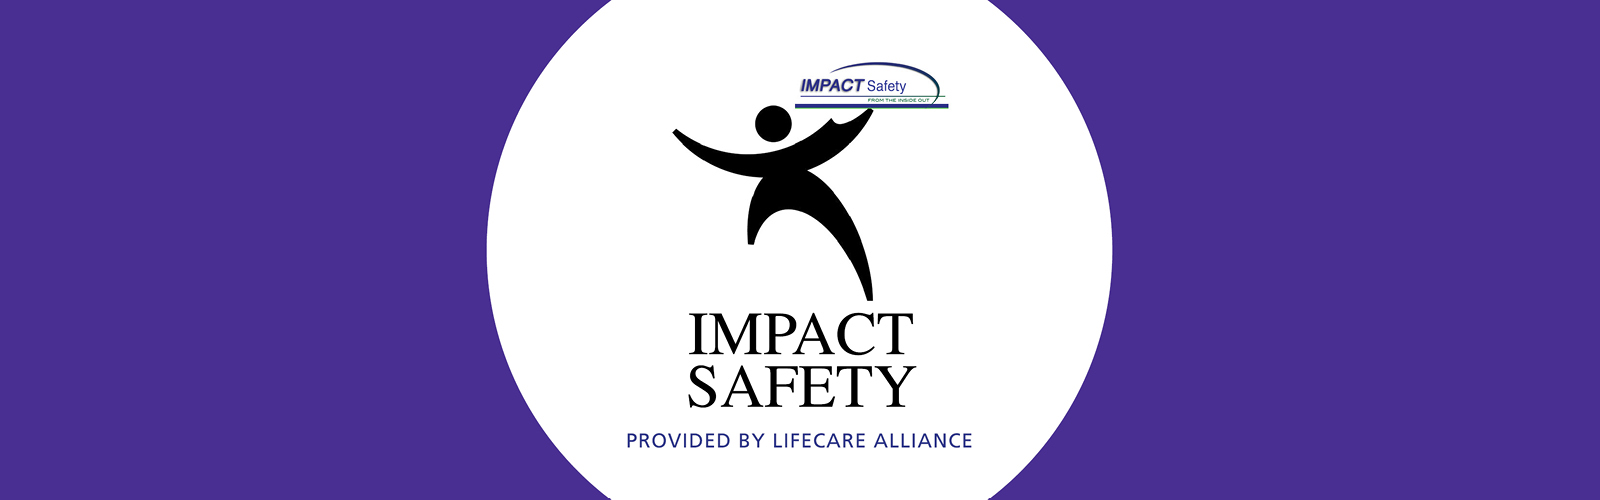 IMPACT Safety logo banner